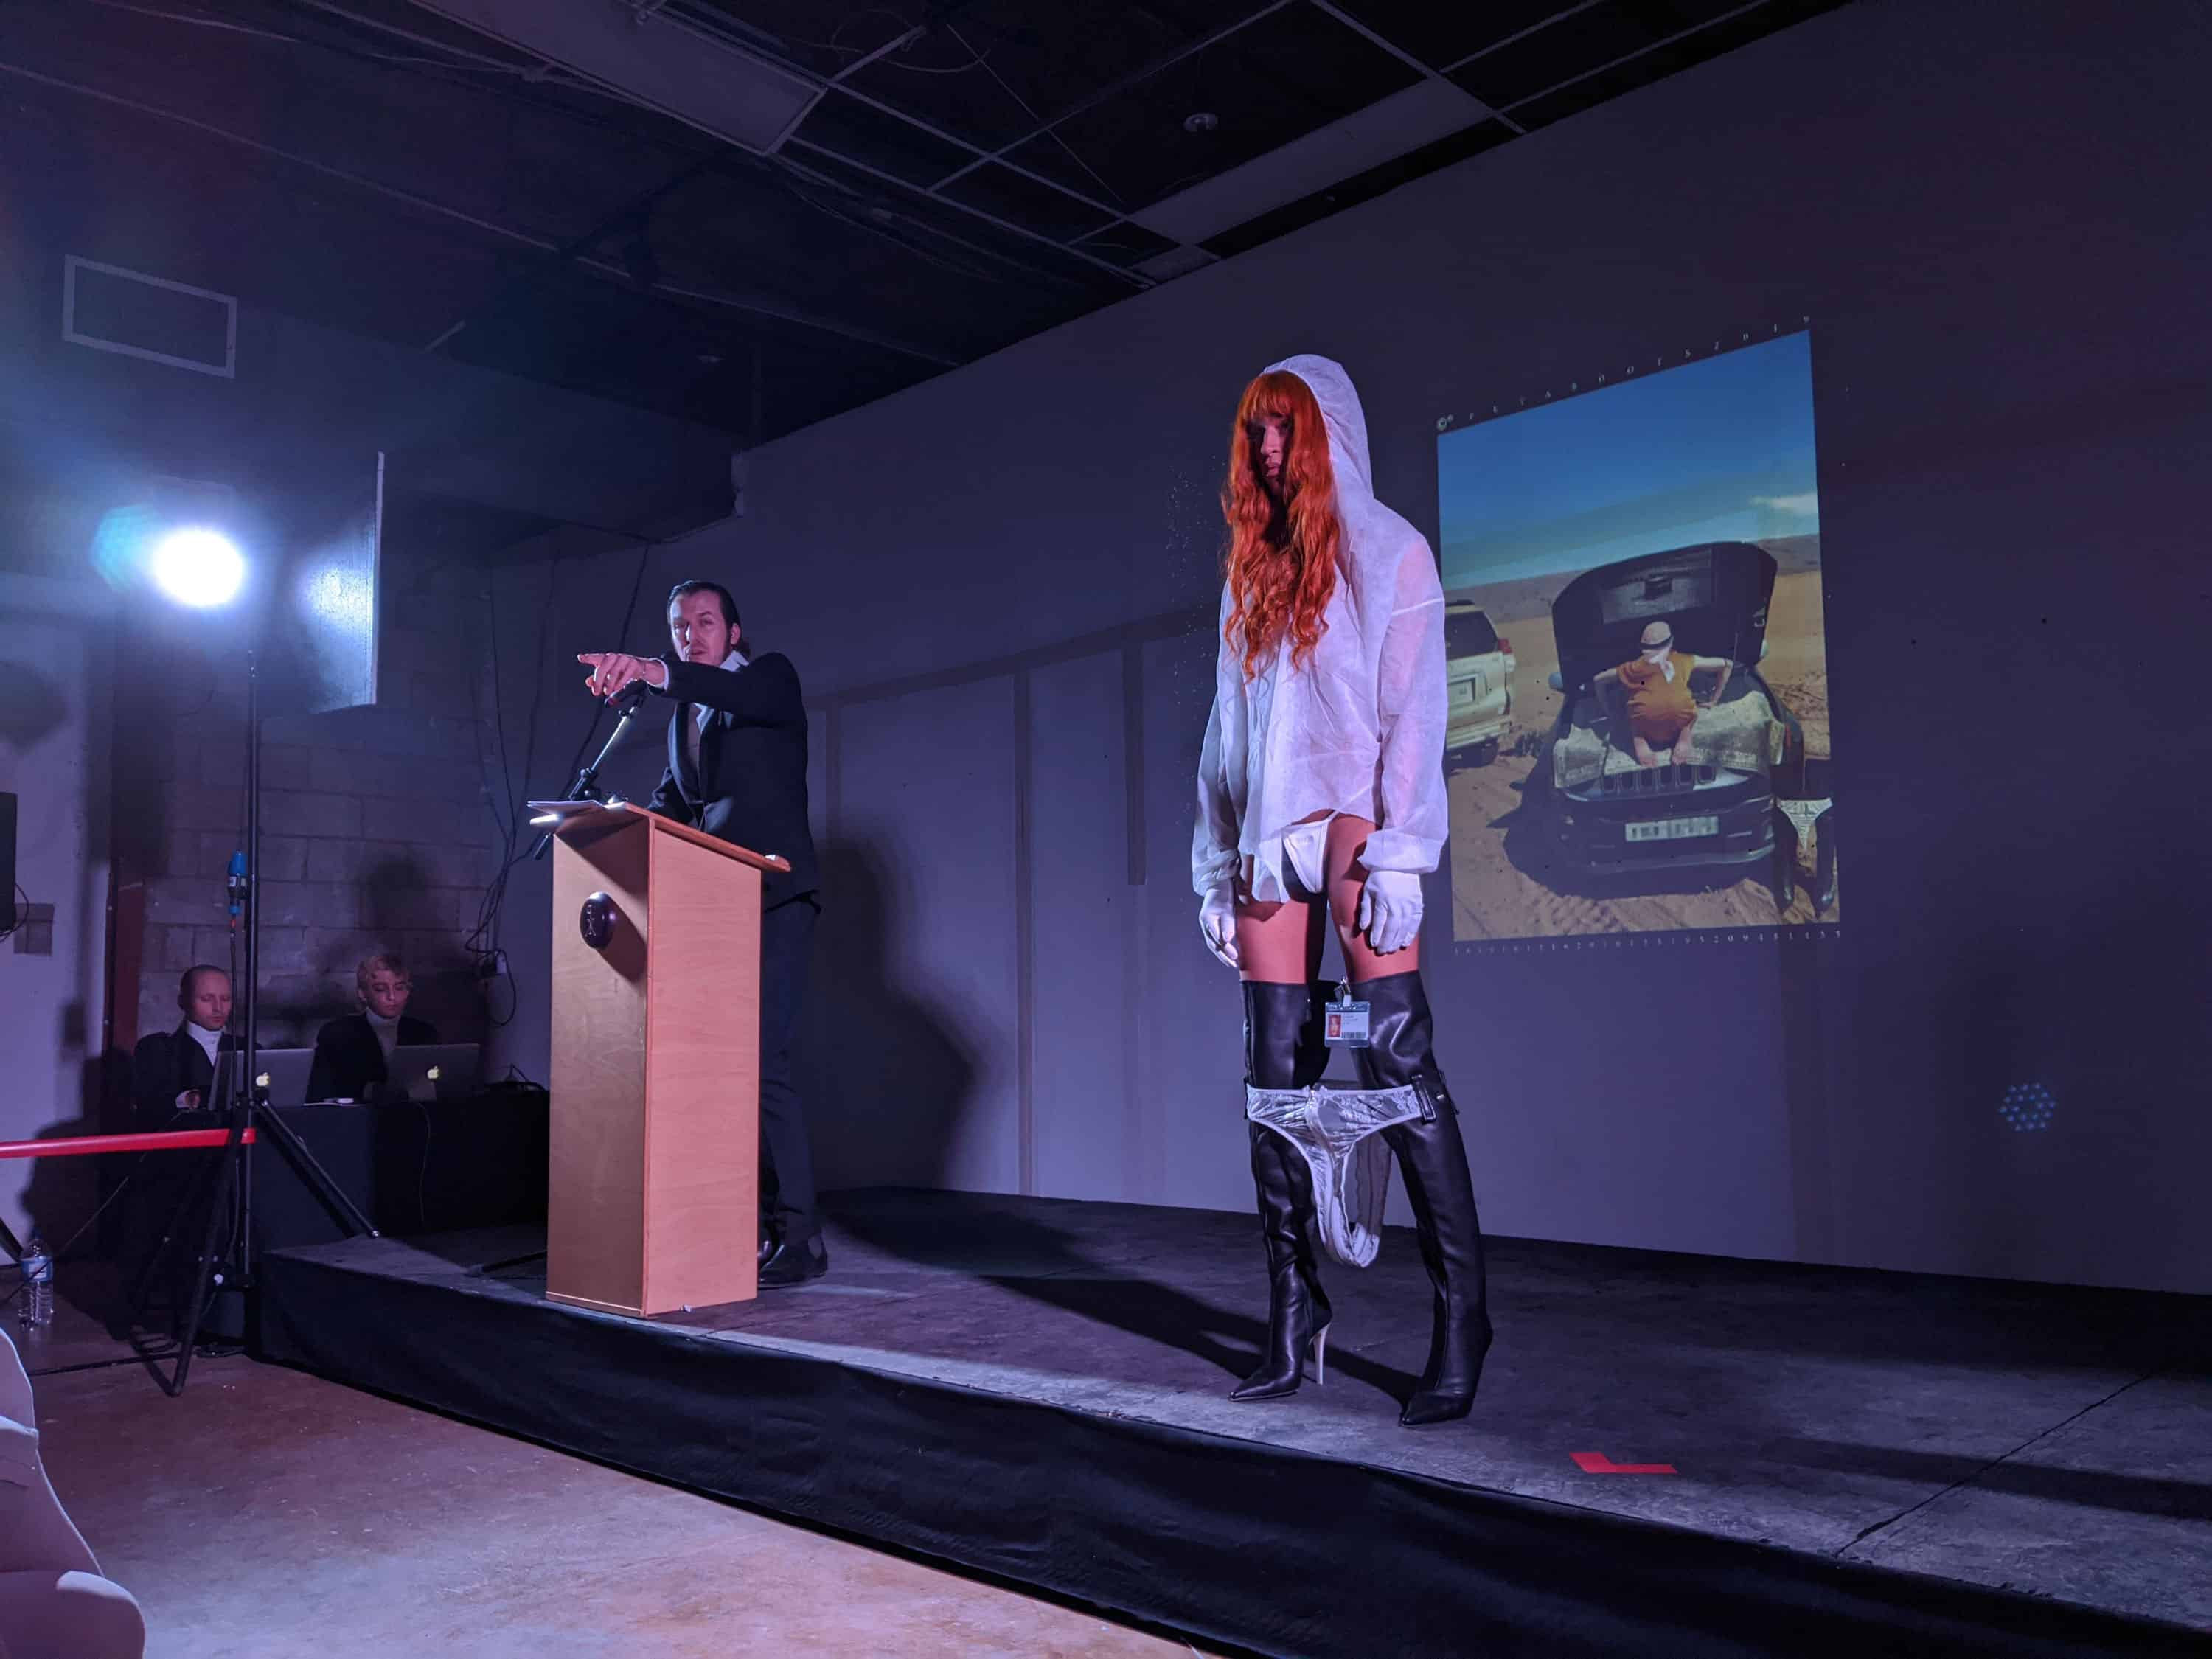 ©®38191613162016135195209451435, 'Puta Boots', AuctionCR28112019, 2019. Performance, curated by Belinda Martin Porras, The Biscuit Factory, London